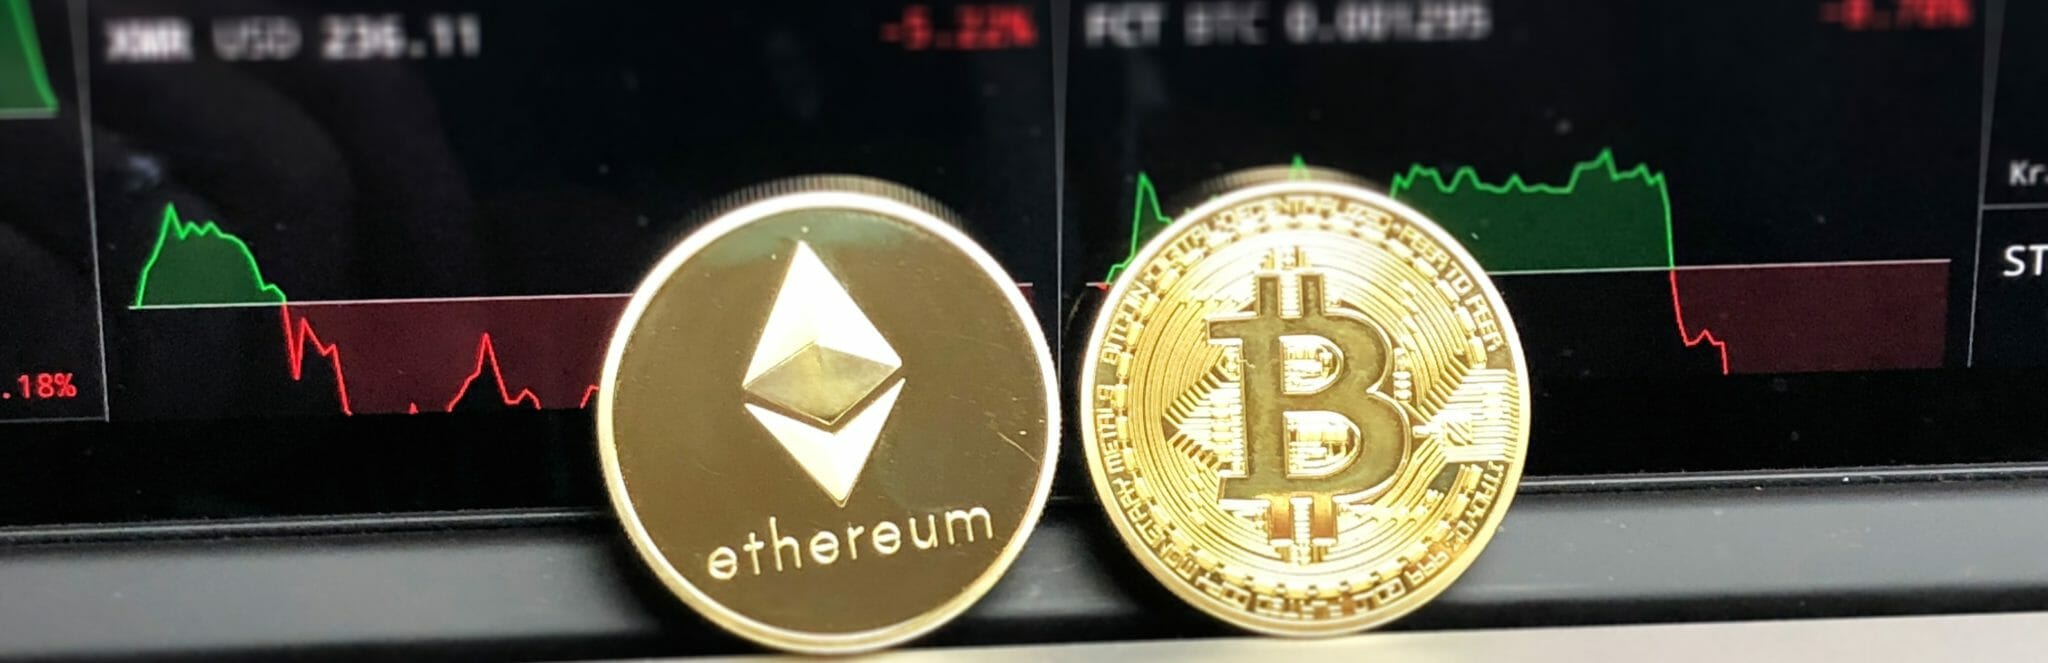 how to accept cryptocurrency on website